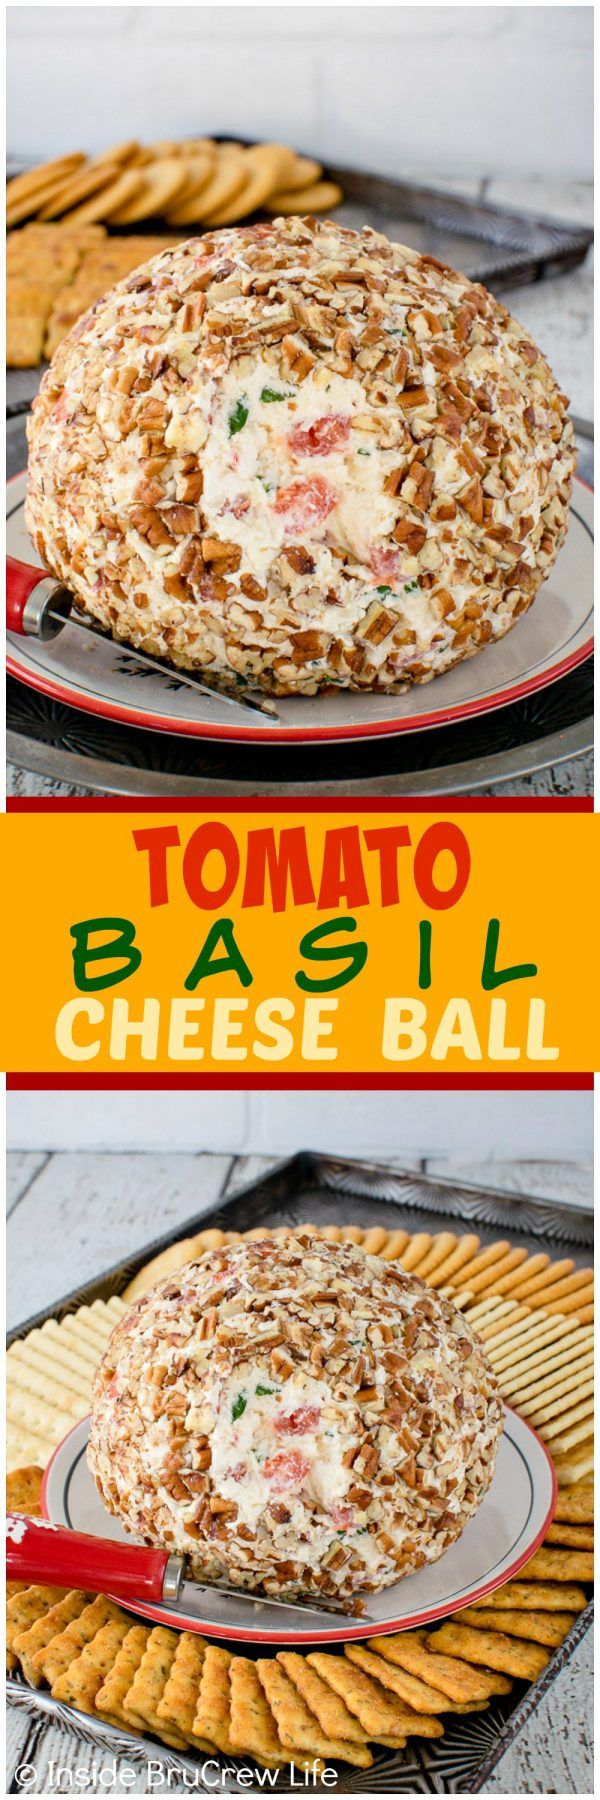 Tomato Basil Cheese Ball - three cheeses, fresh tomatoes, herbs, & nuts give this easy dip lots of flavor. Great appetizer for game day parties!